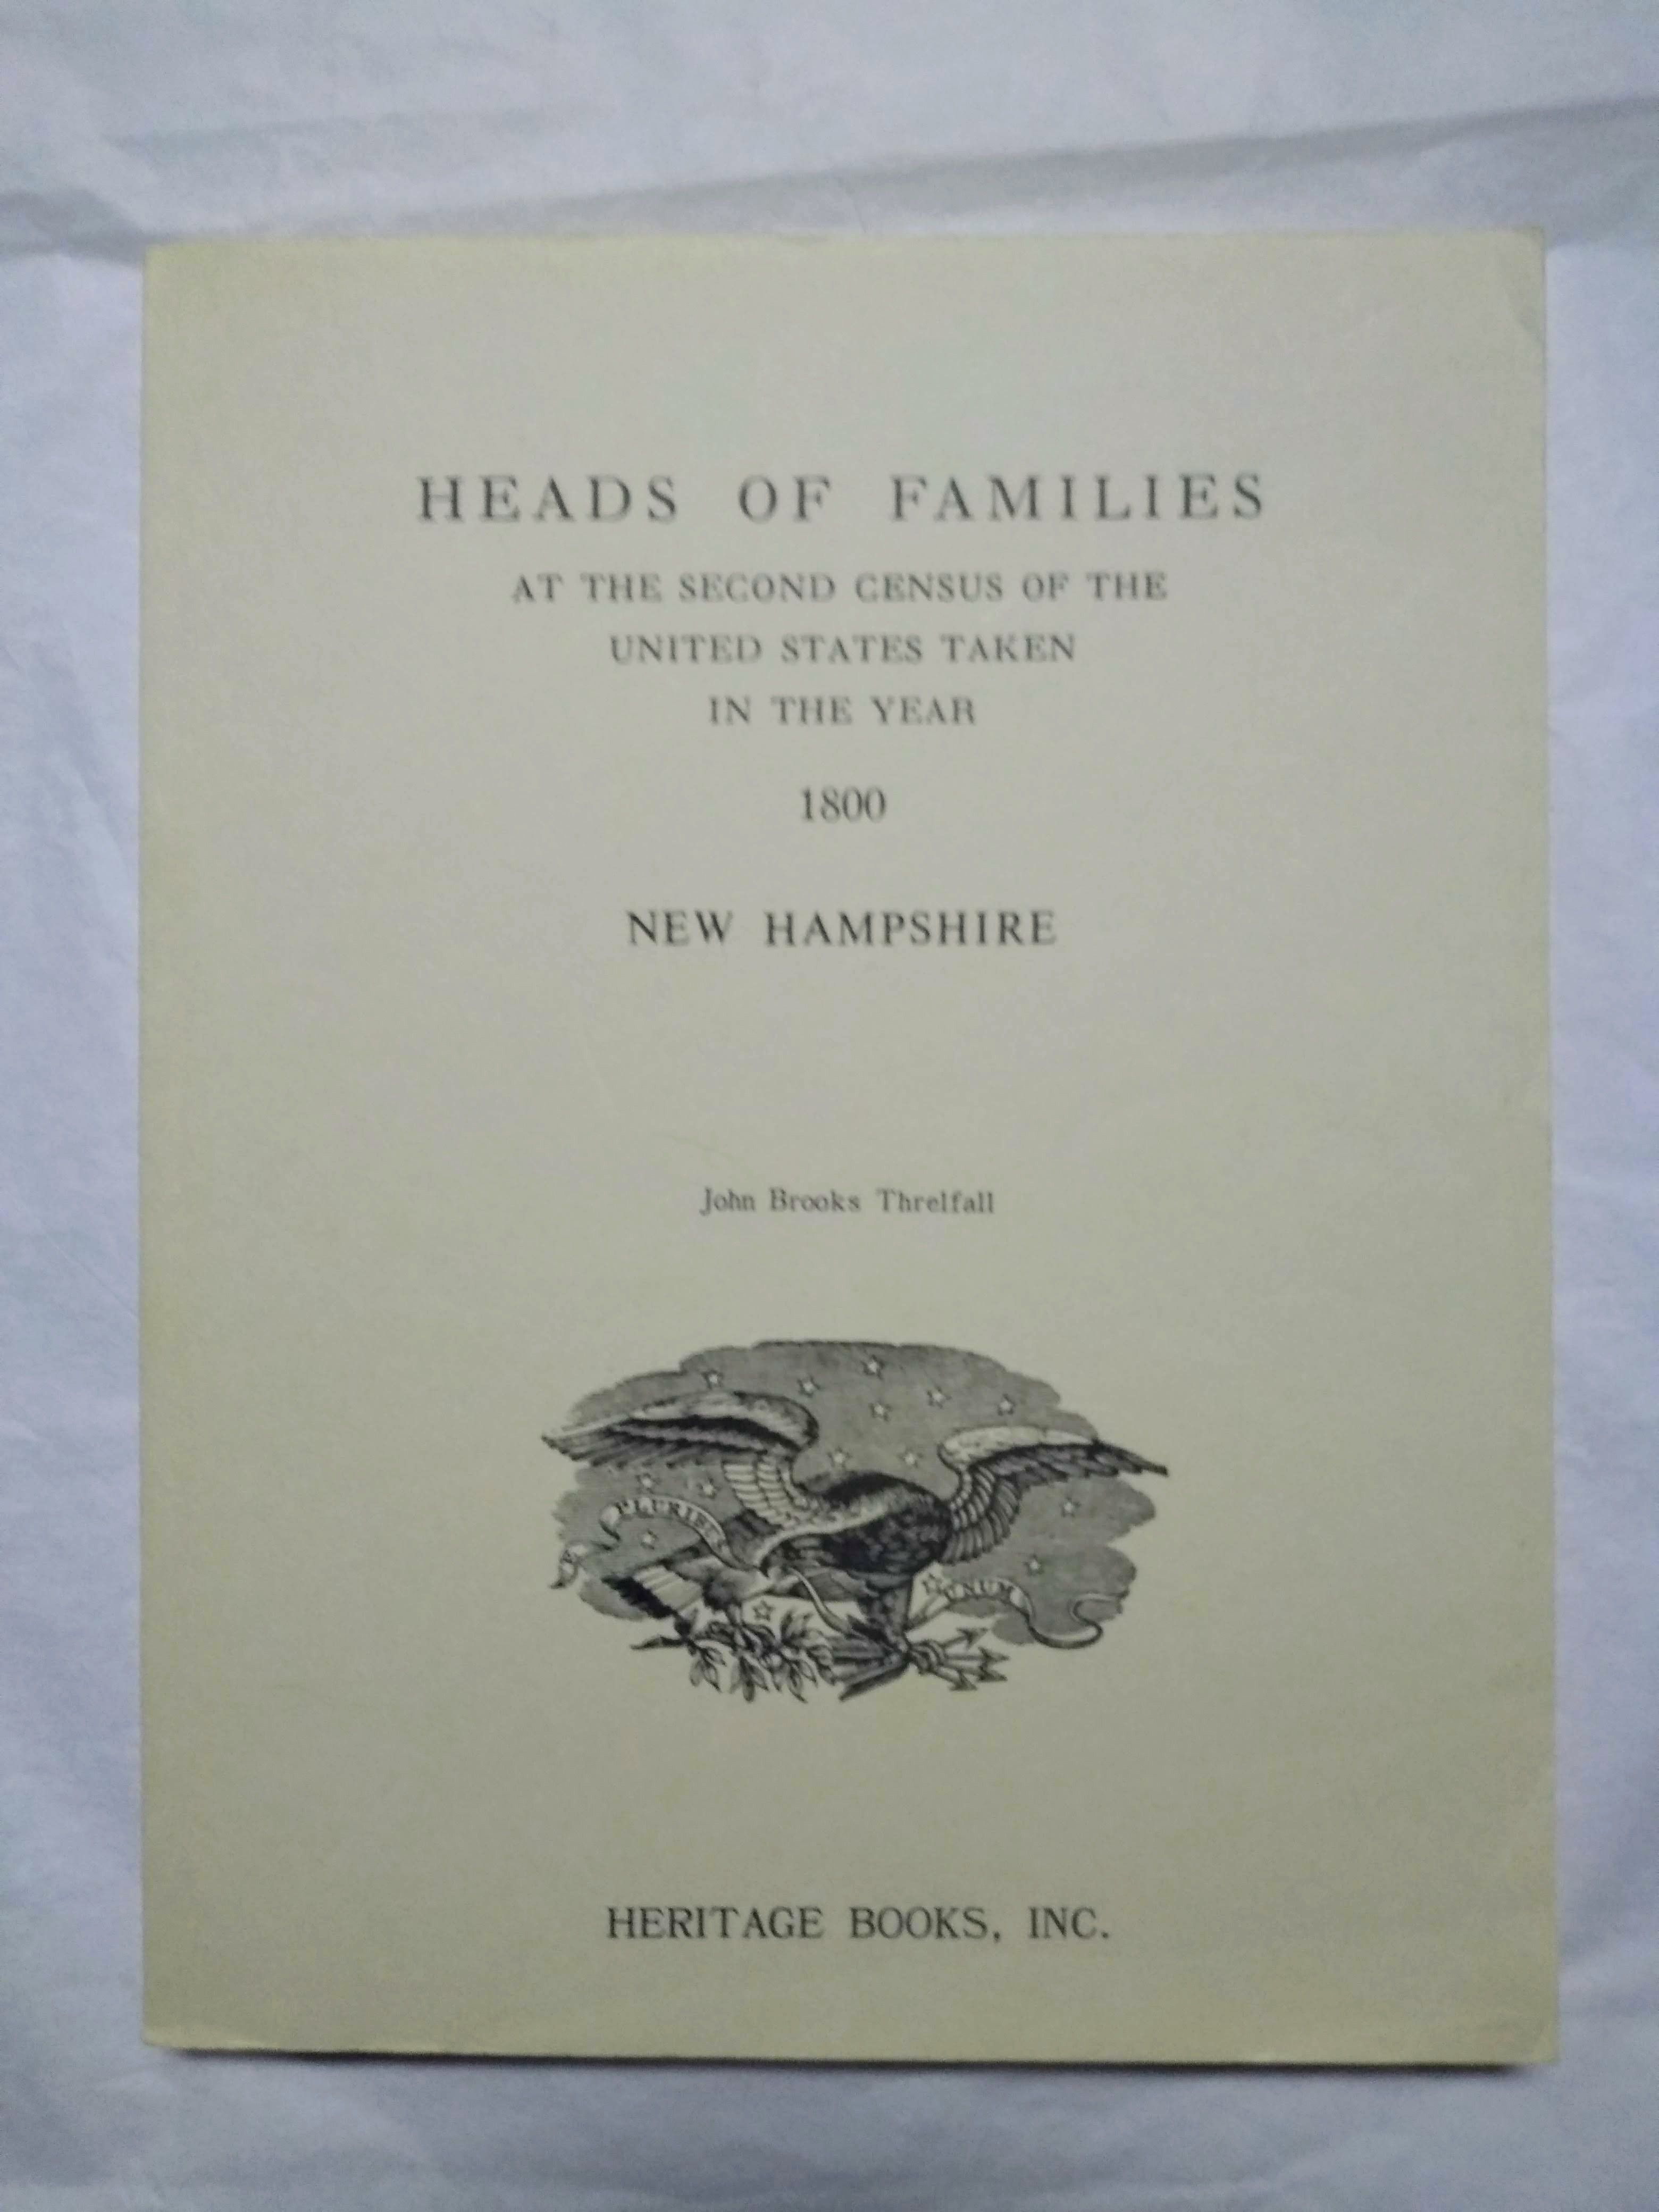 Heads of Families at the Second Census of the United States Taken in the Year 1800: New Hampshire